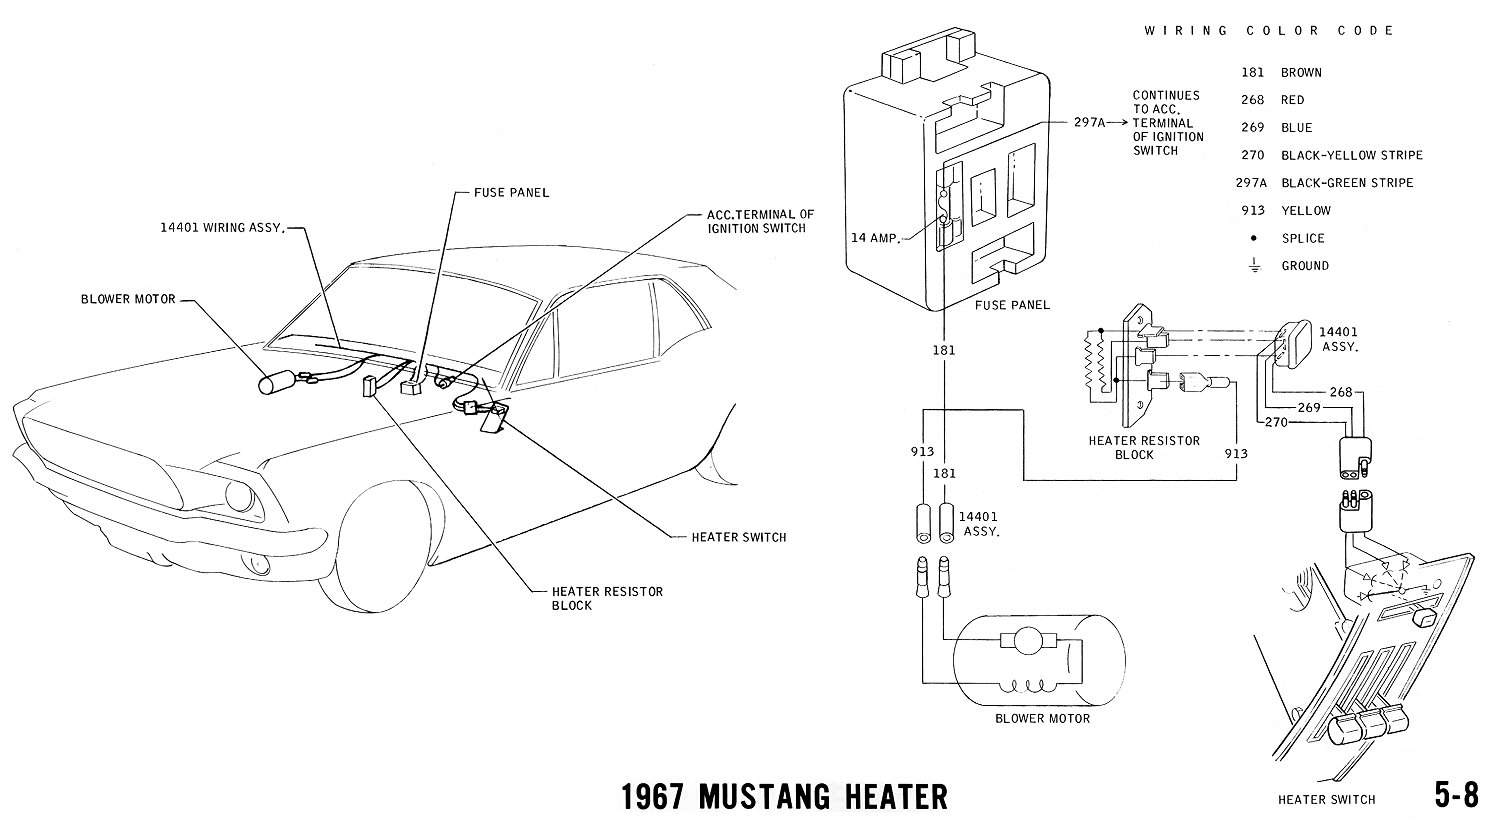 67 mustang fuse box diagram alternator wiring diagram for 1967 mustang - wiring ... 88 mustang fuse box diagram